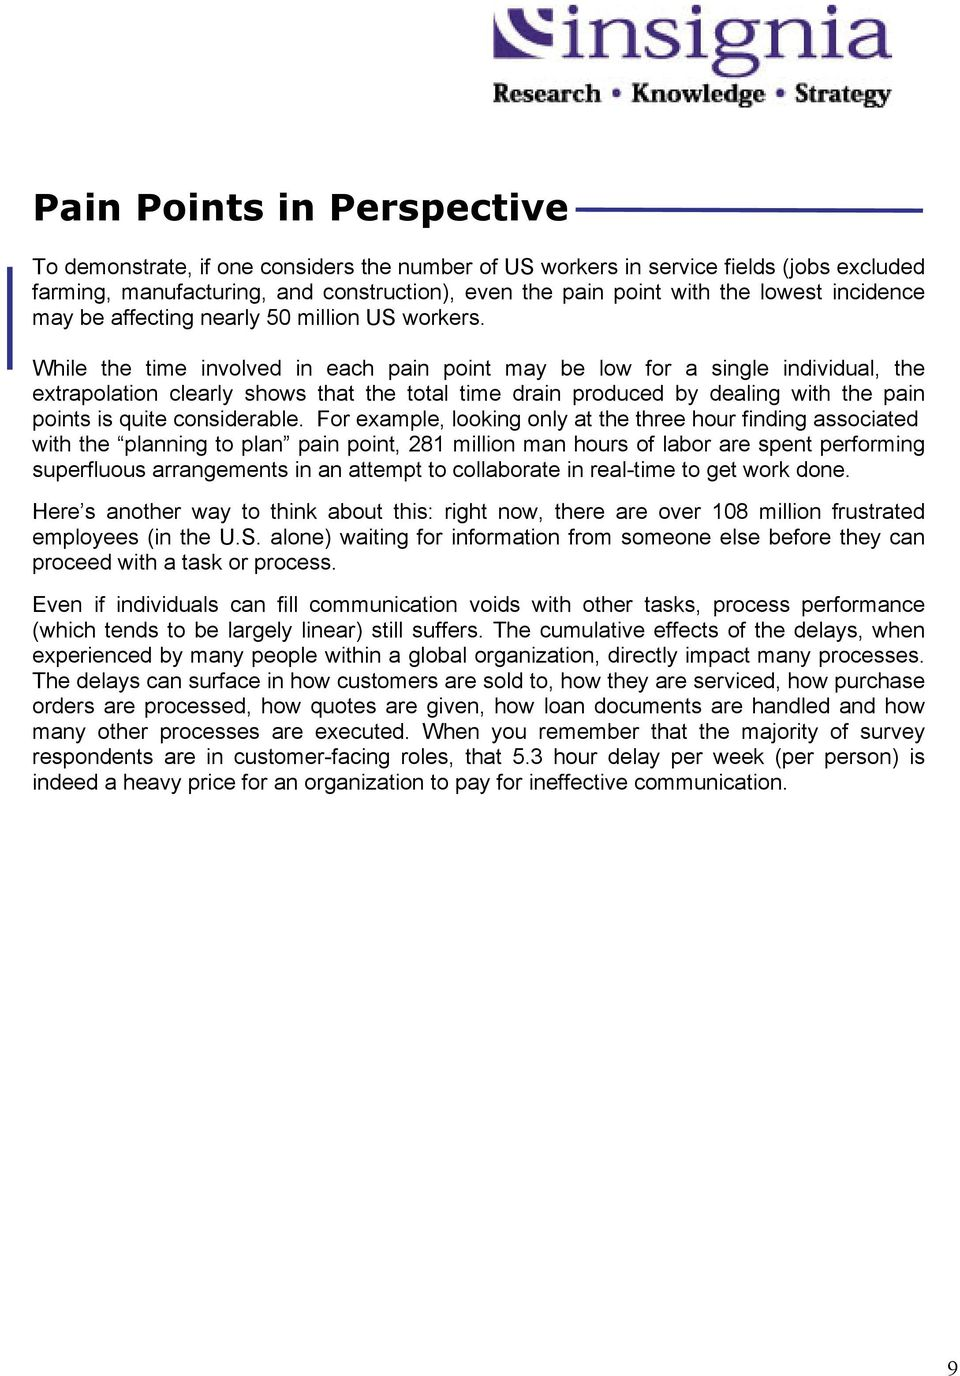 While the time involved in each pain point may be low for a single individual, the extrapolation clearly shows that the total time drain produced by dealing with the pain points is quite considerable.